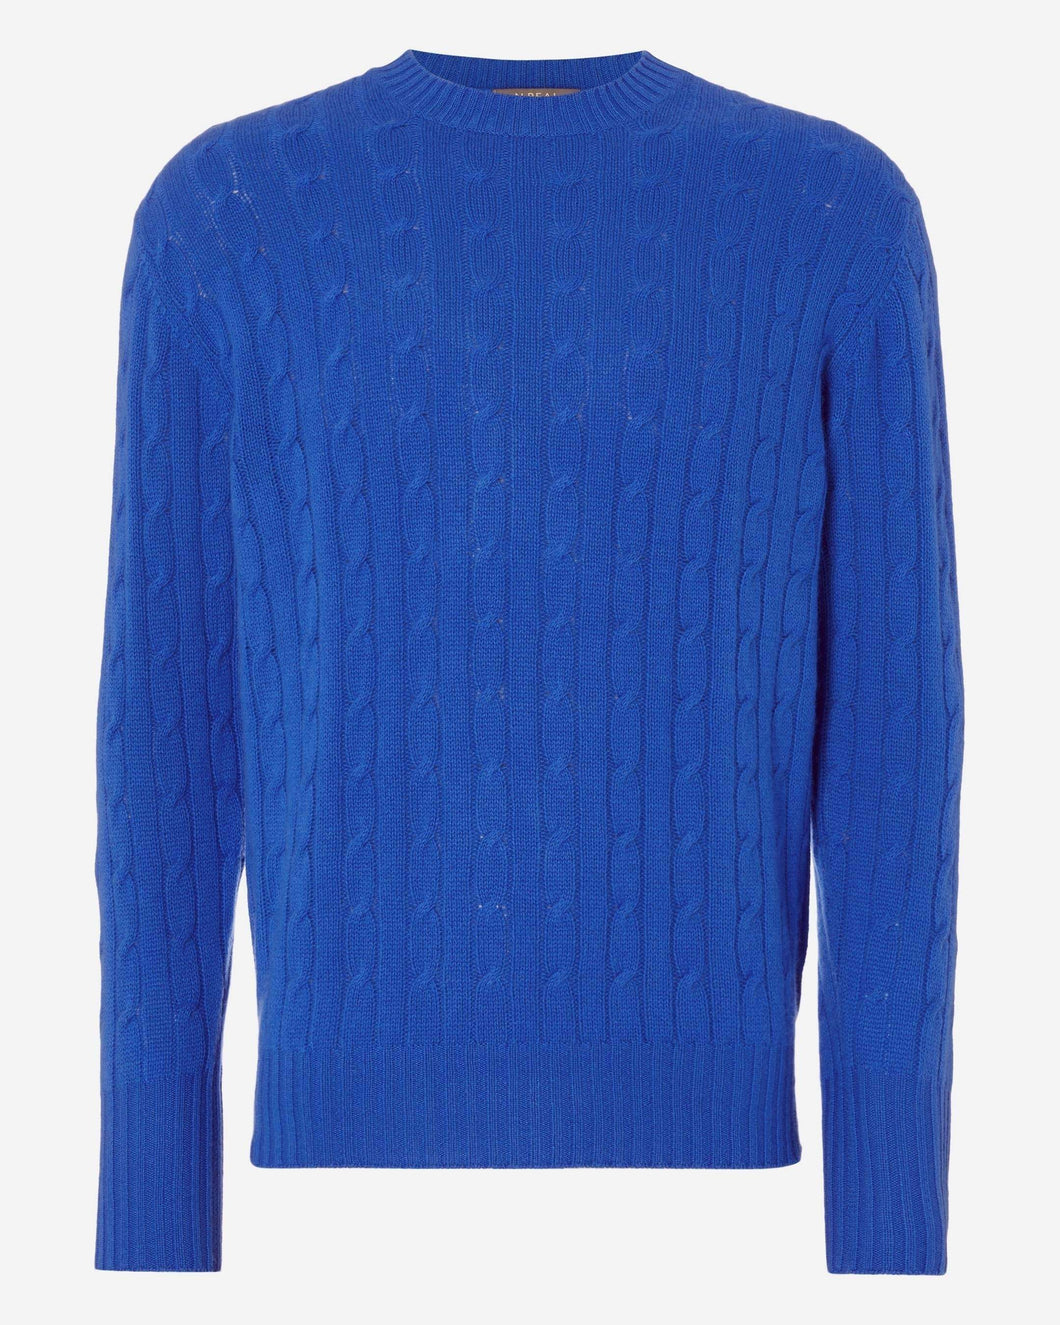 The Thames Cable Cashmere Sweater Zephyr Blue